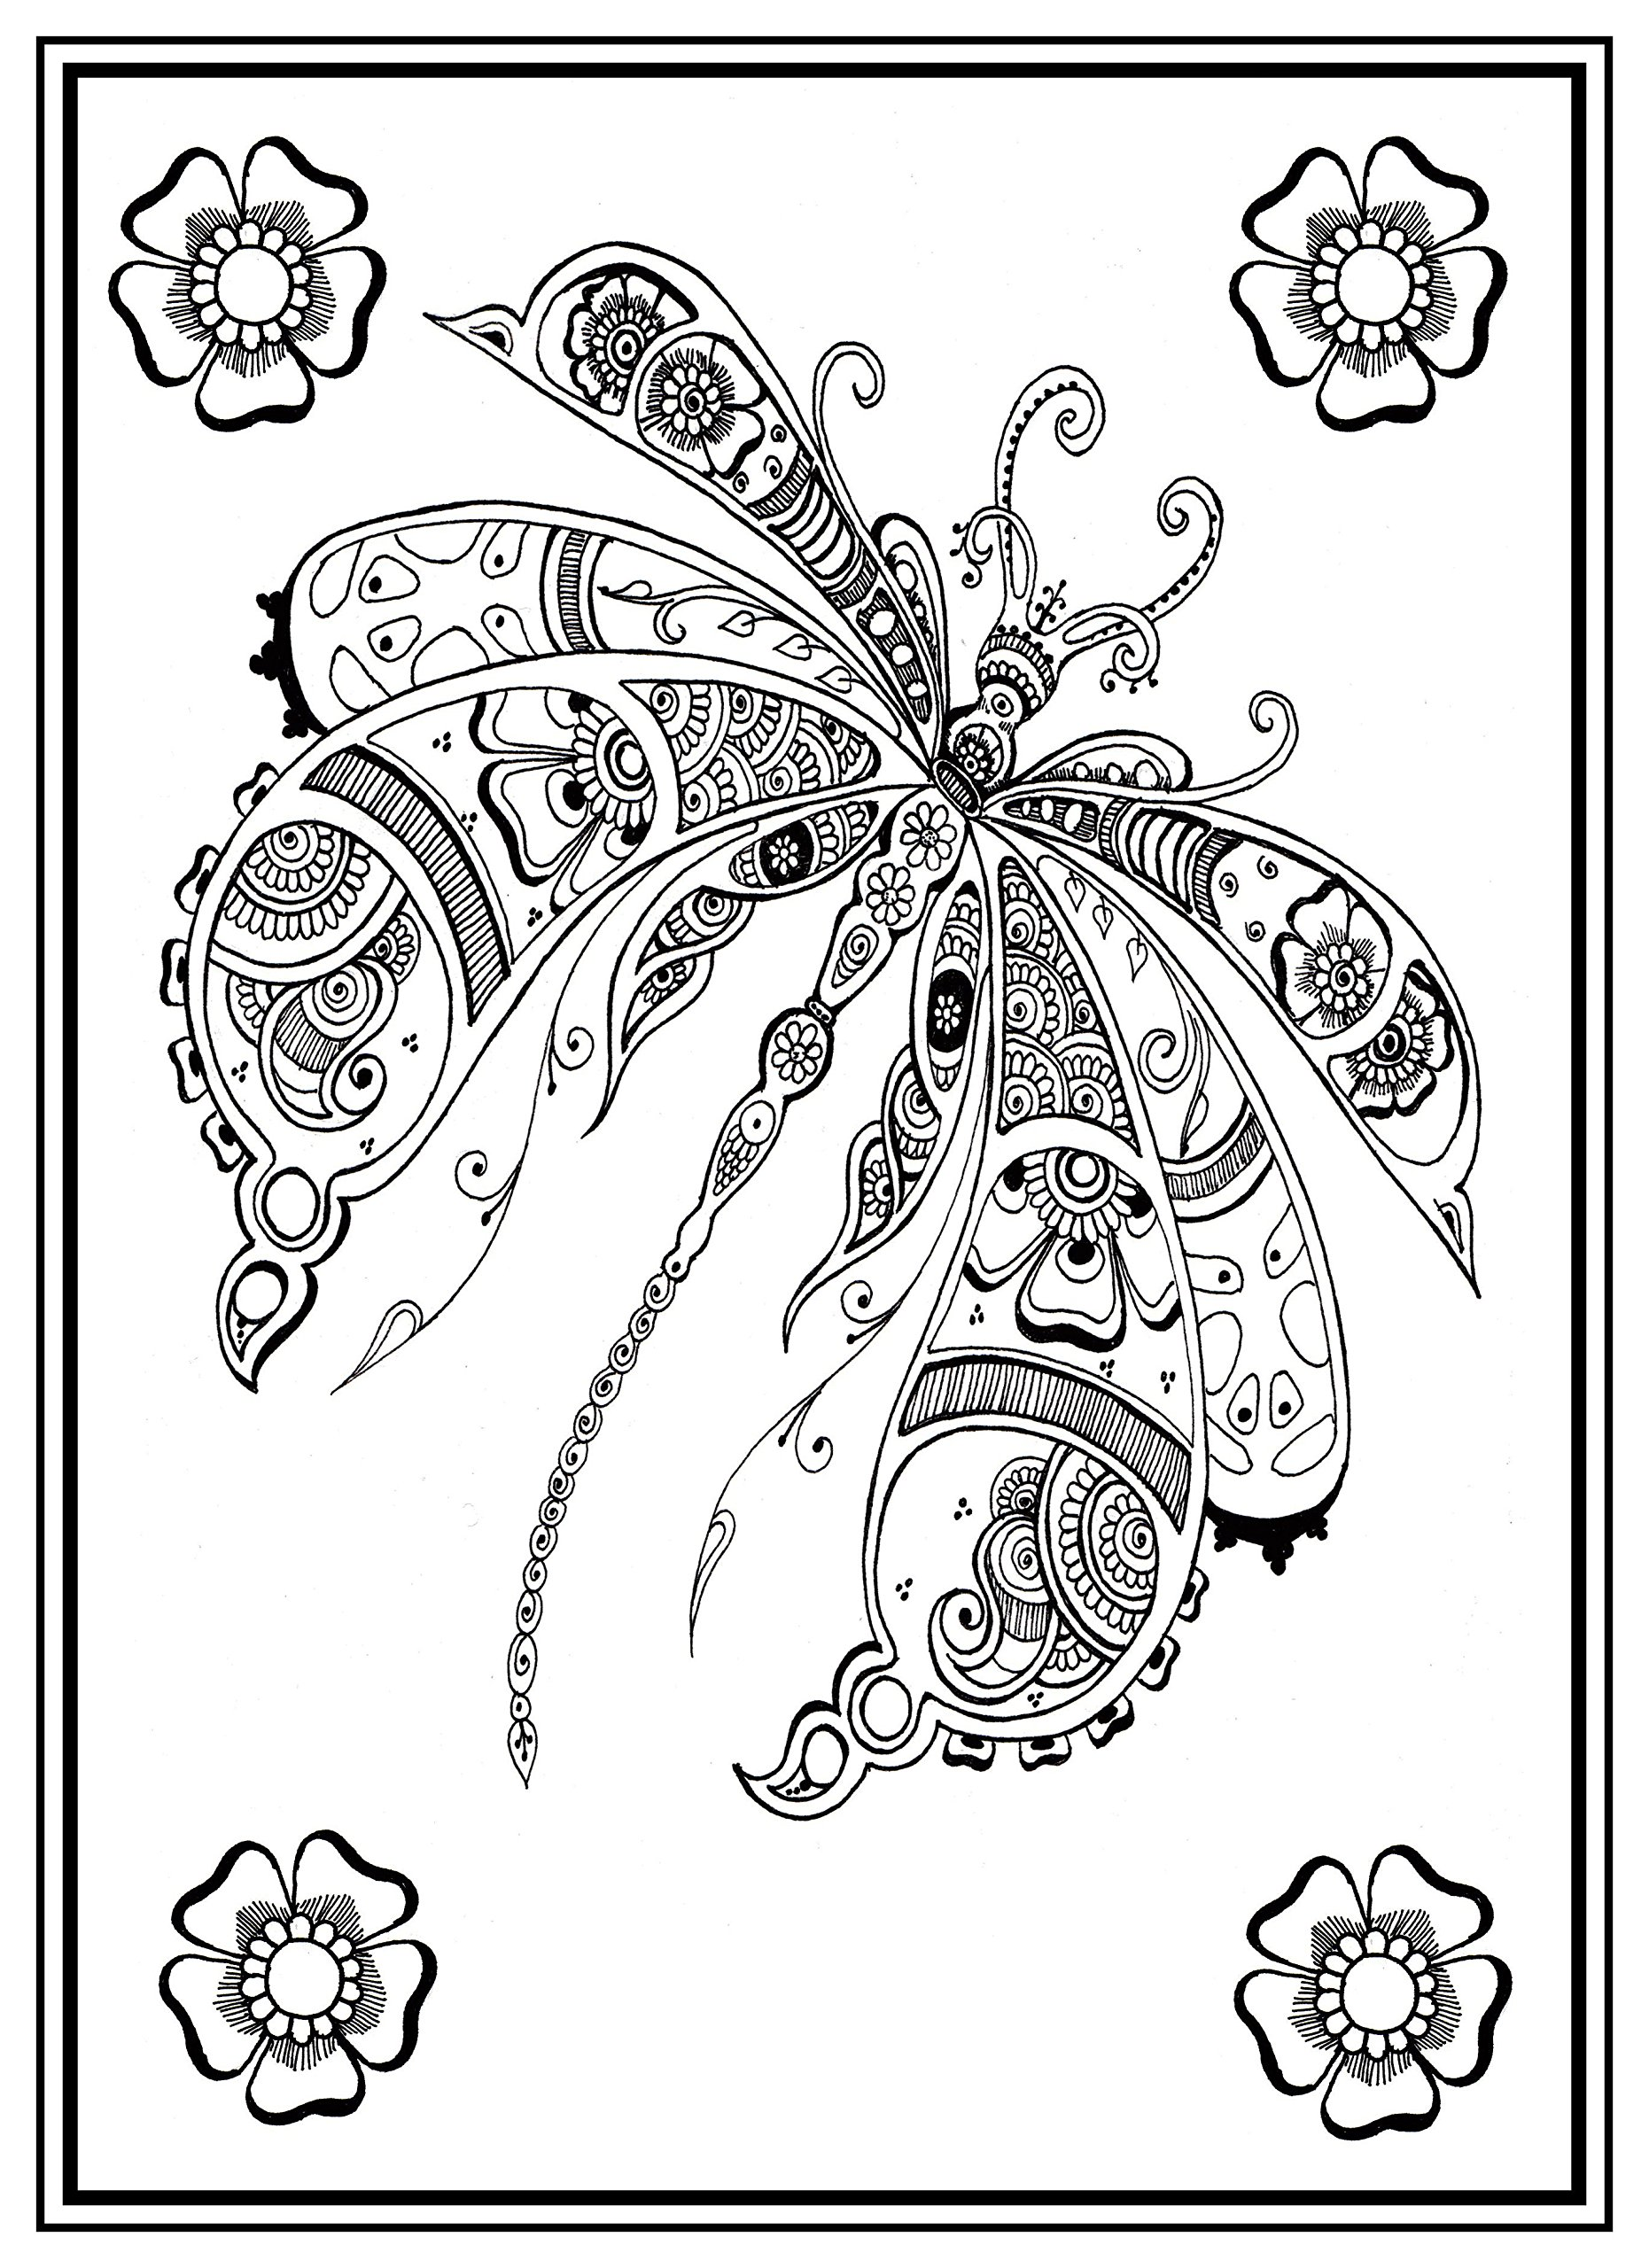 The botany coloring book pdf - The Green Lady S Zen Henna Colouring Book Gwen Davies 0700461593140 Amazon Com Books